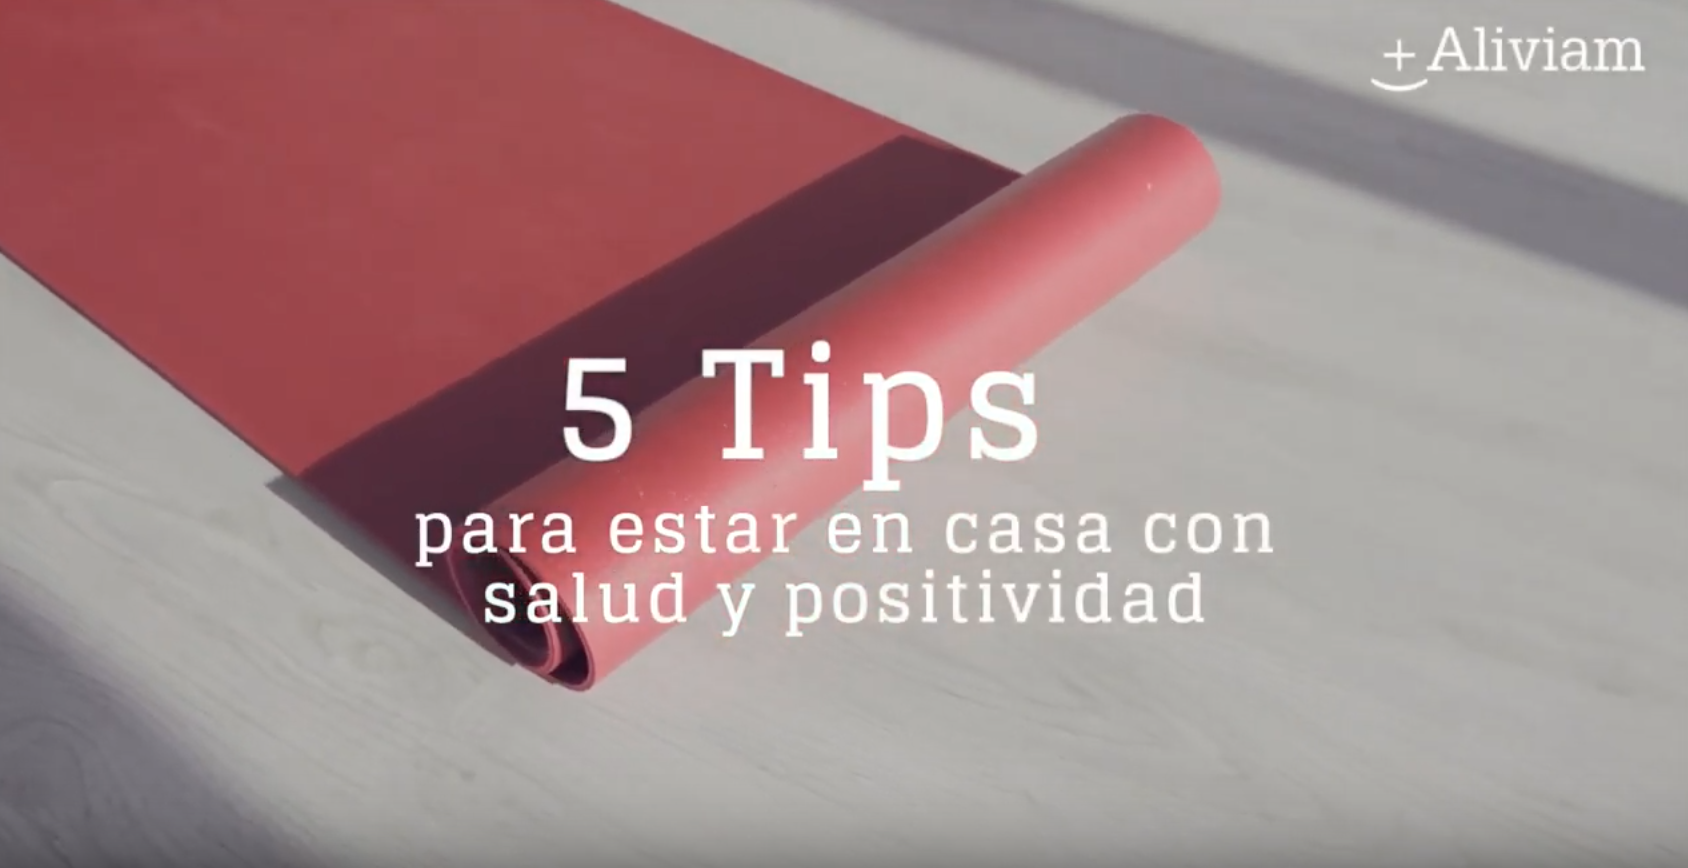 5 tips para un confinamiento saludable en casa